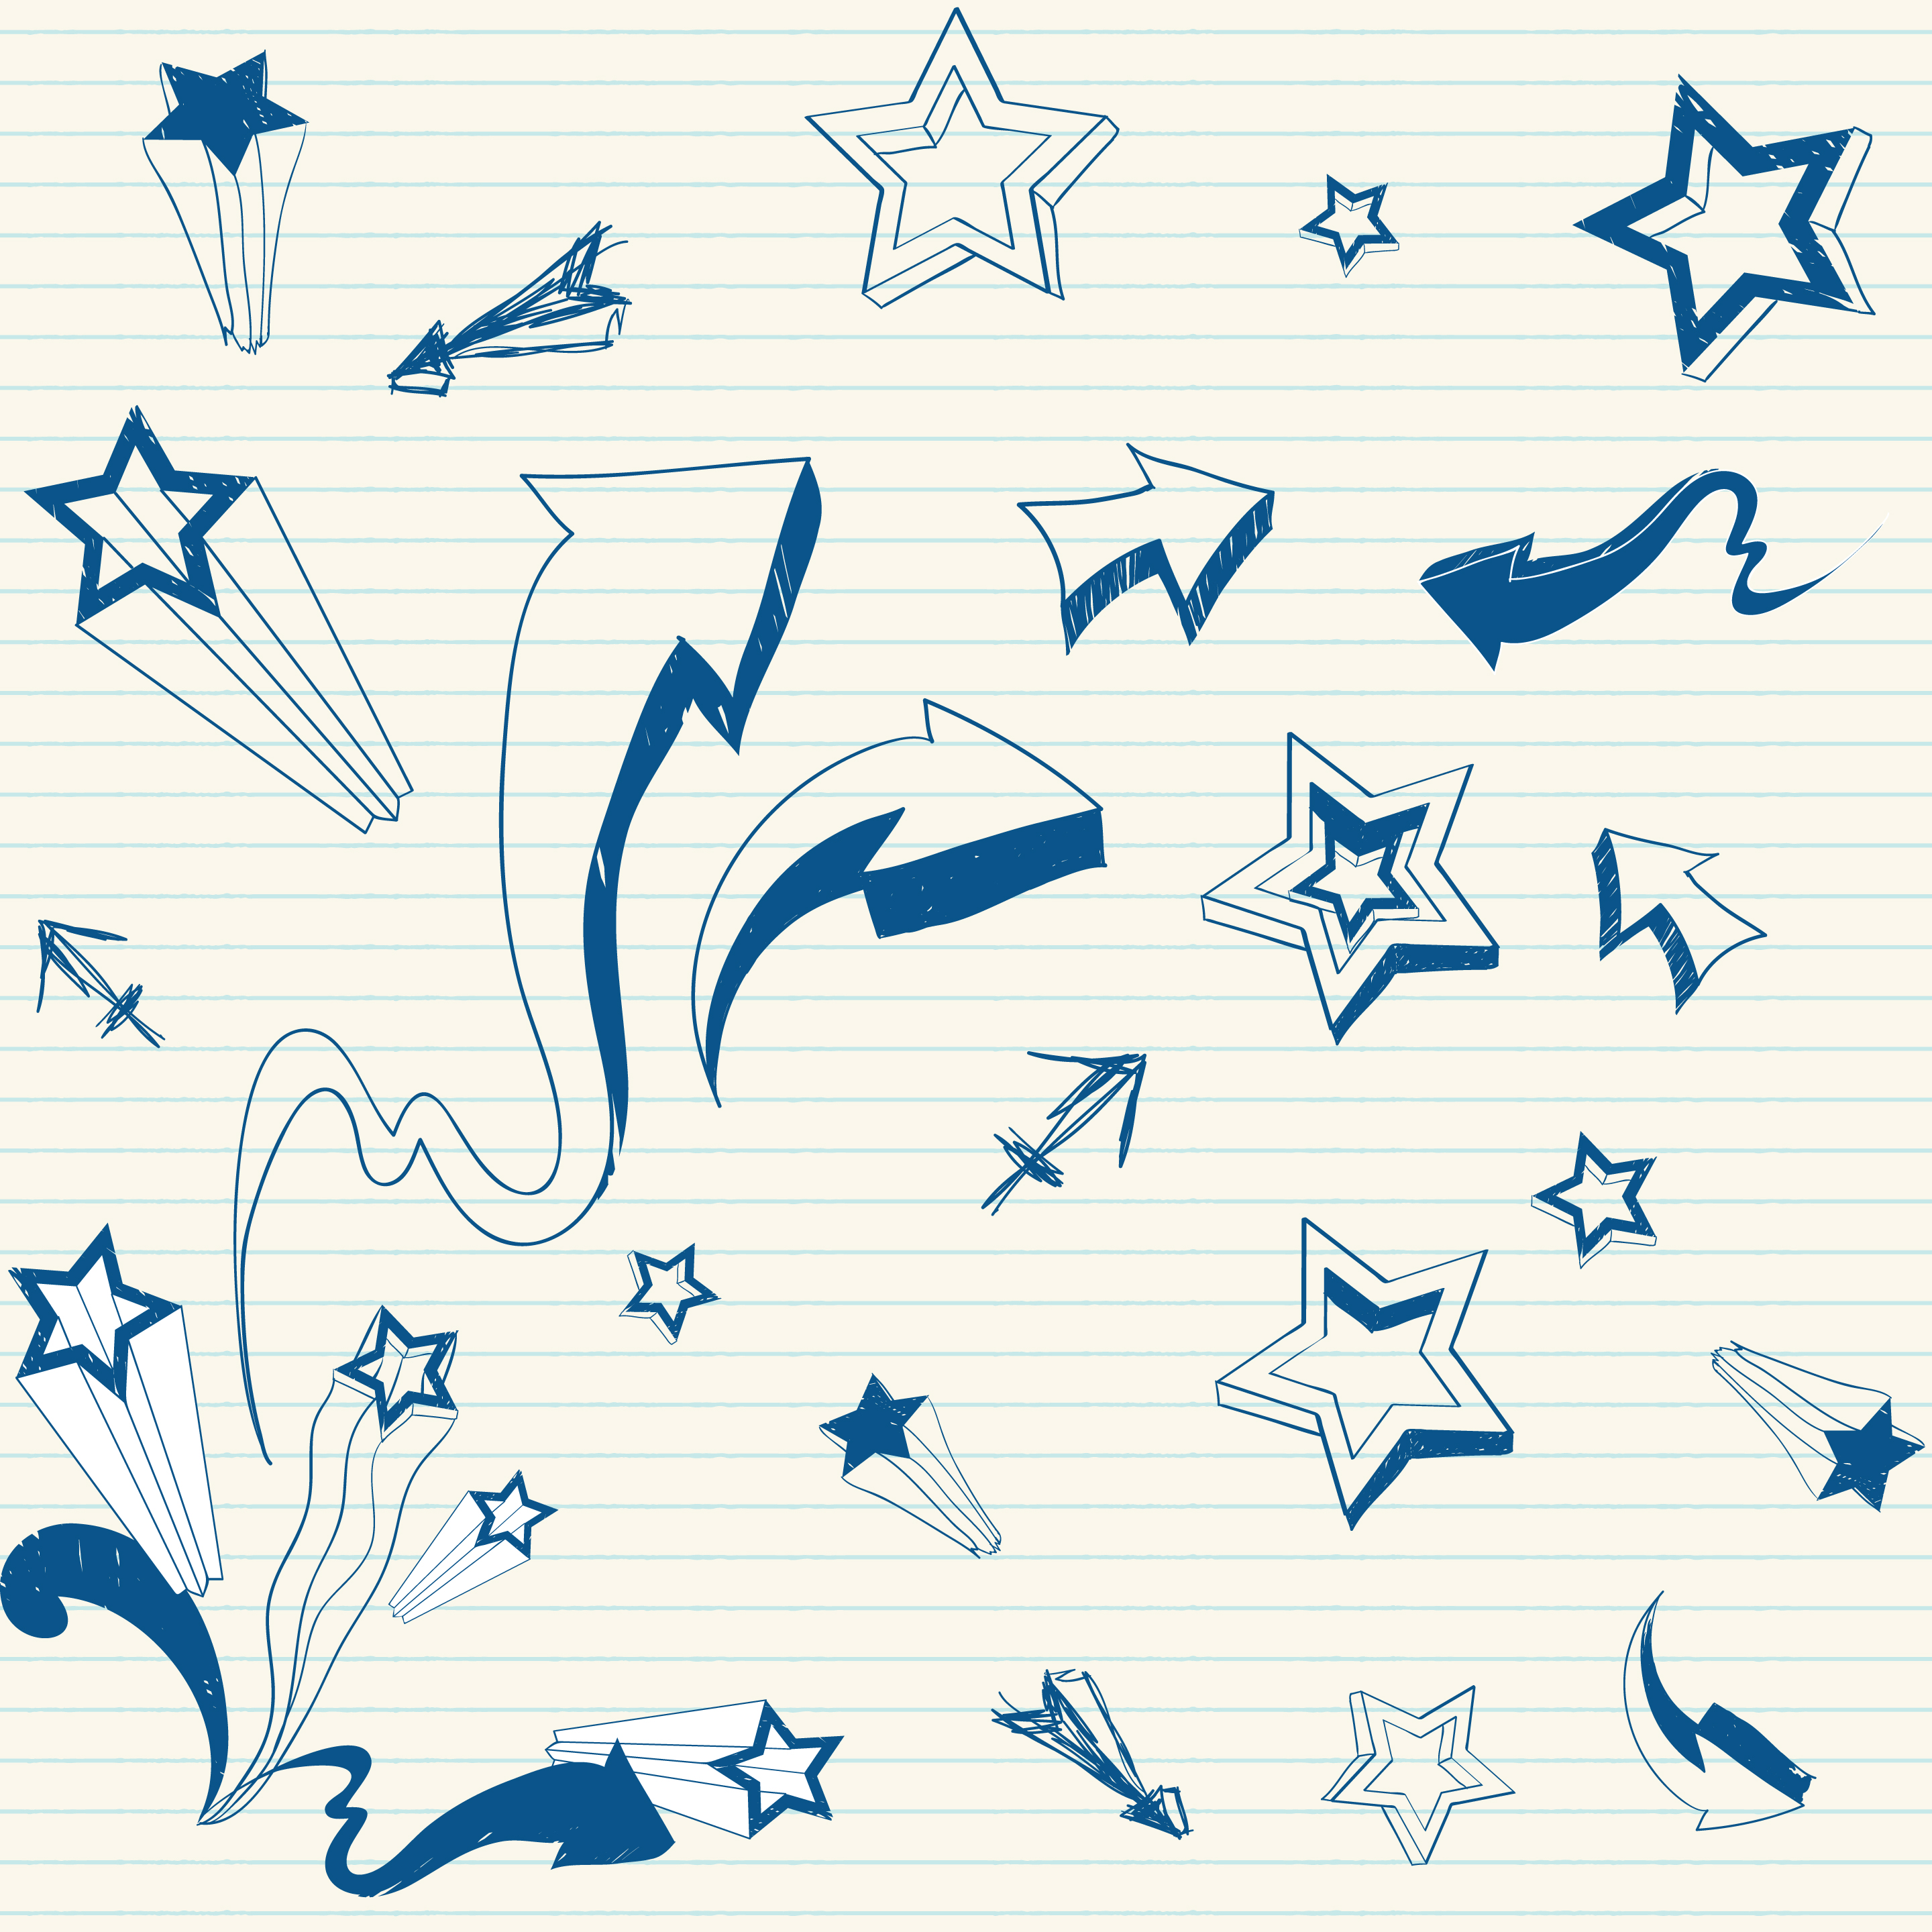 hand-drawn doodles of stars and arrows on notepaper